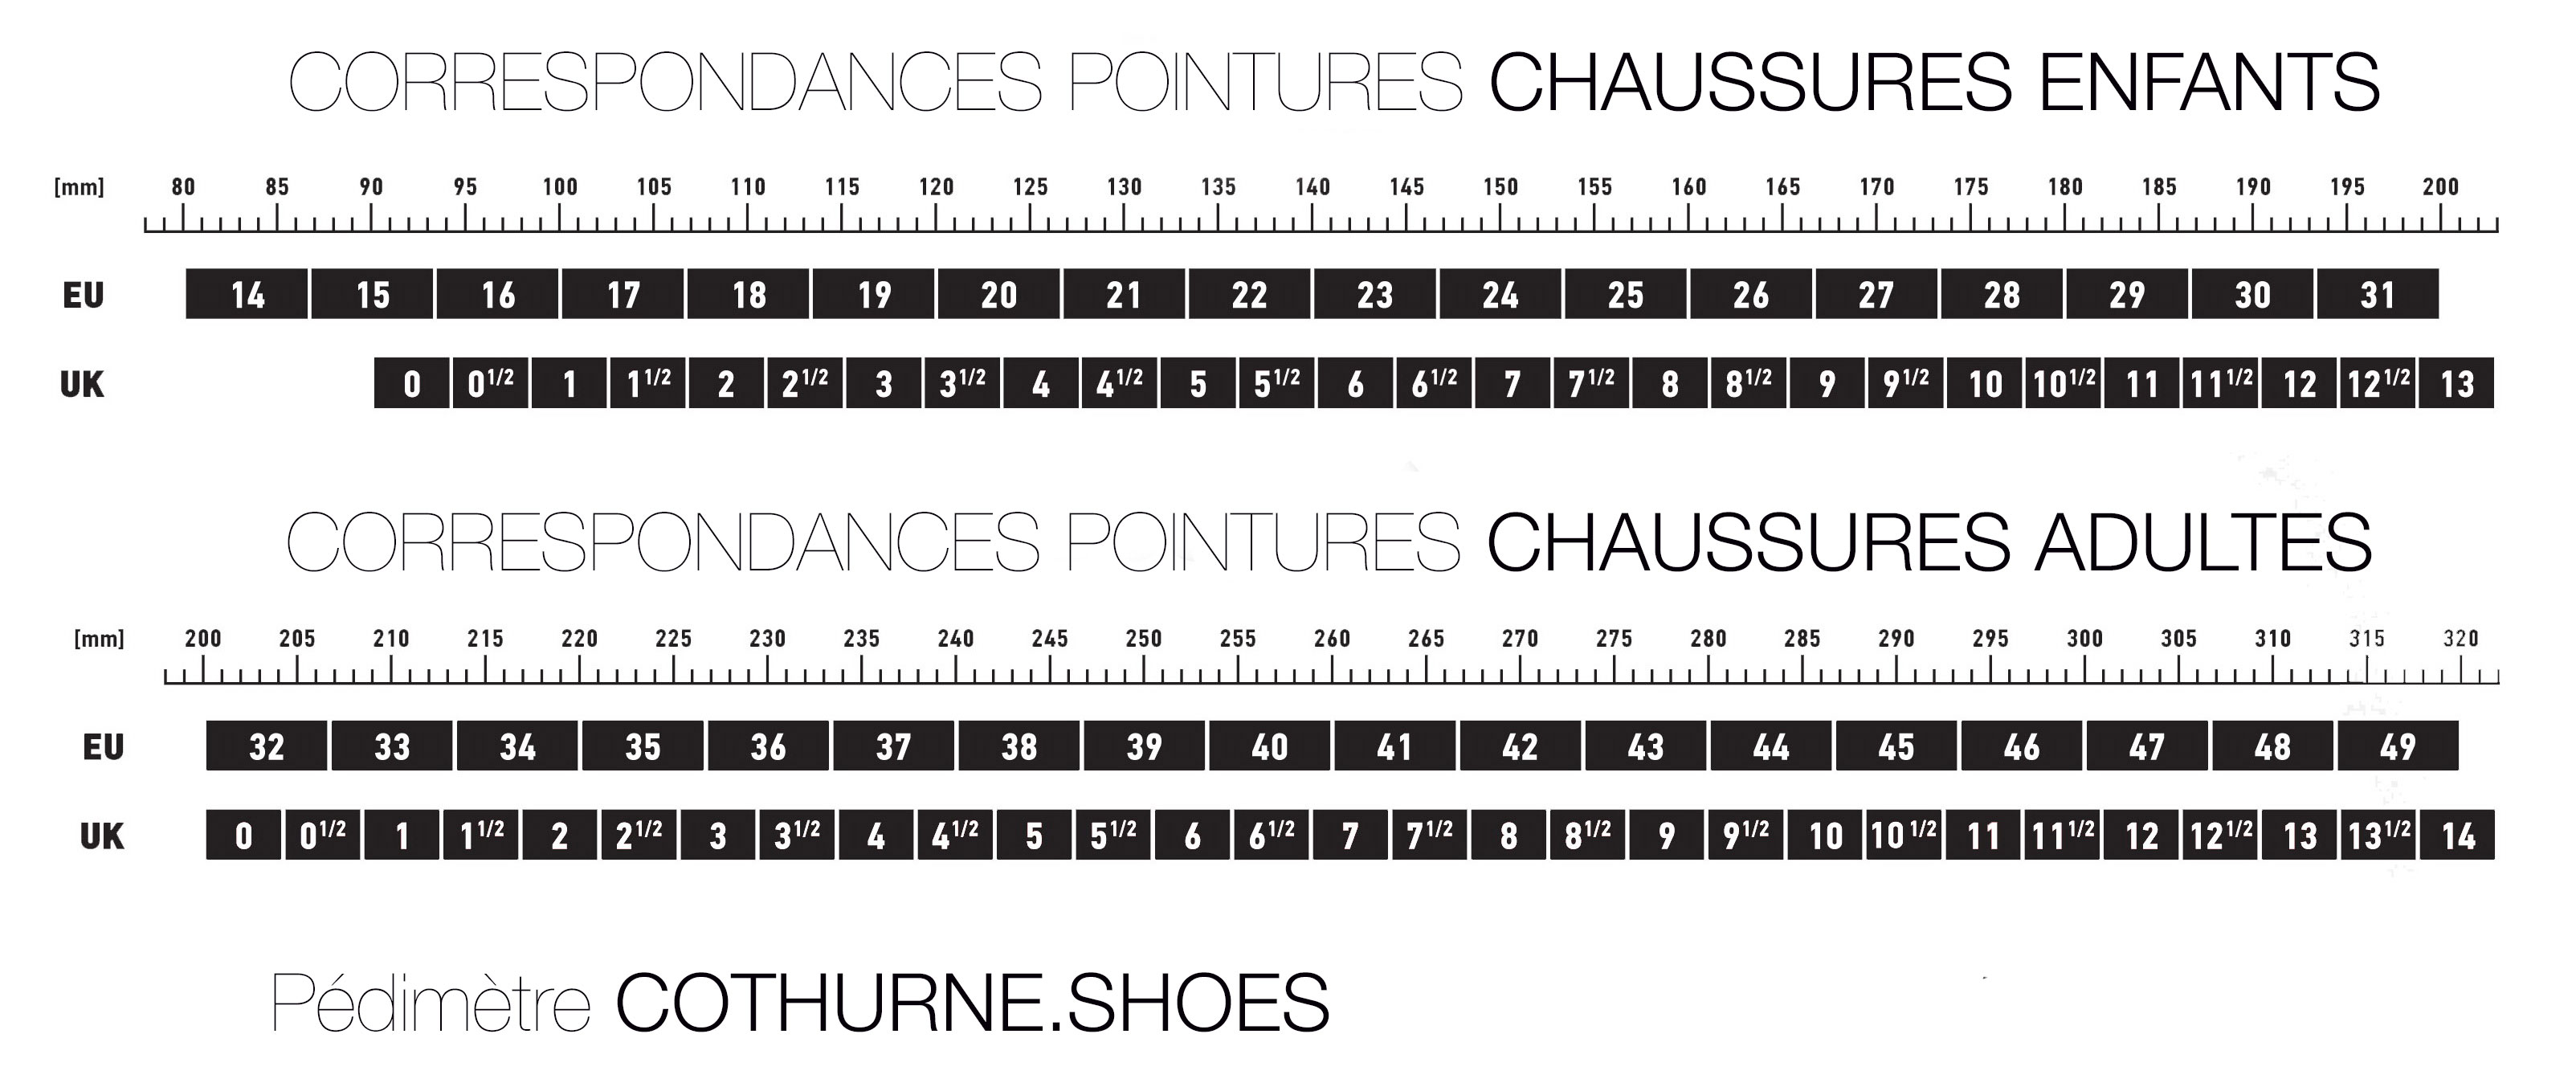 Pointures Chaussures correspondances FR/UK